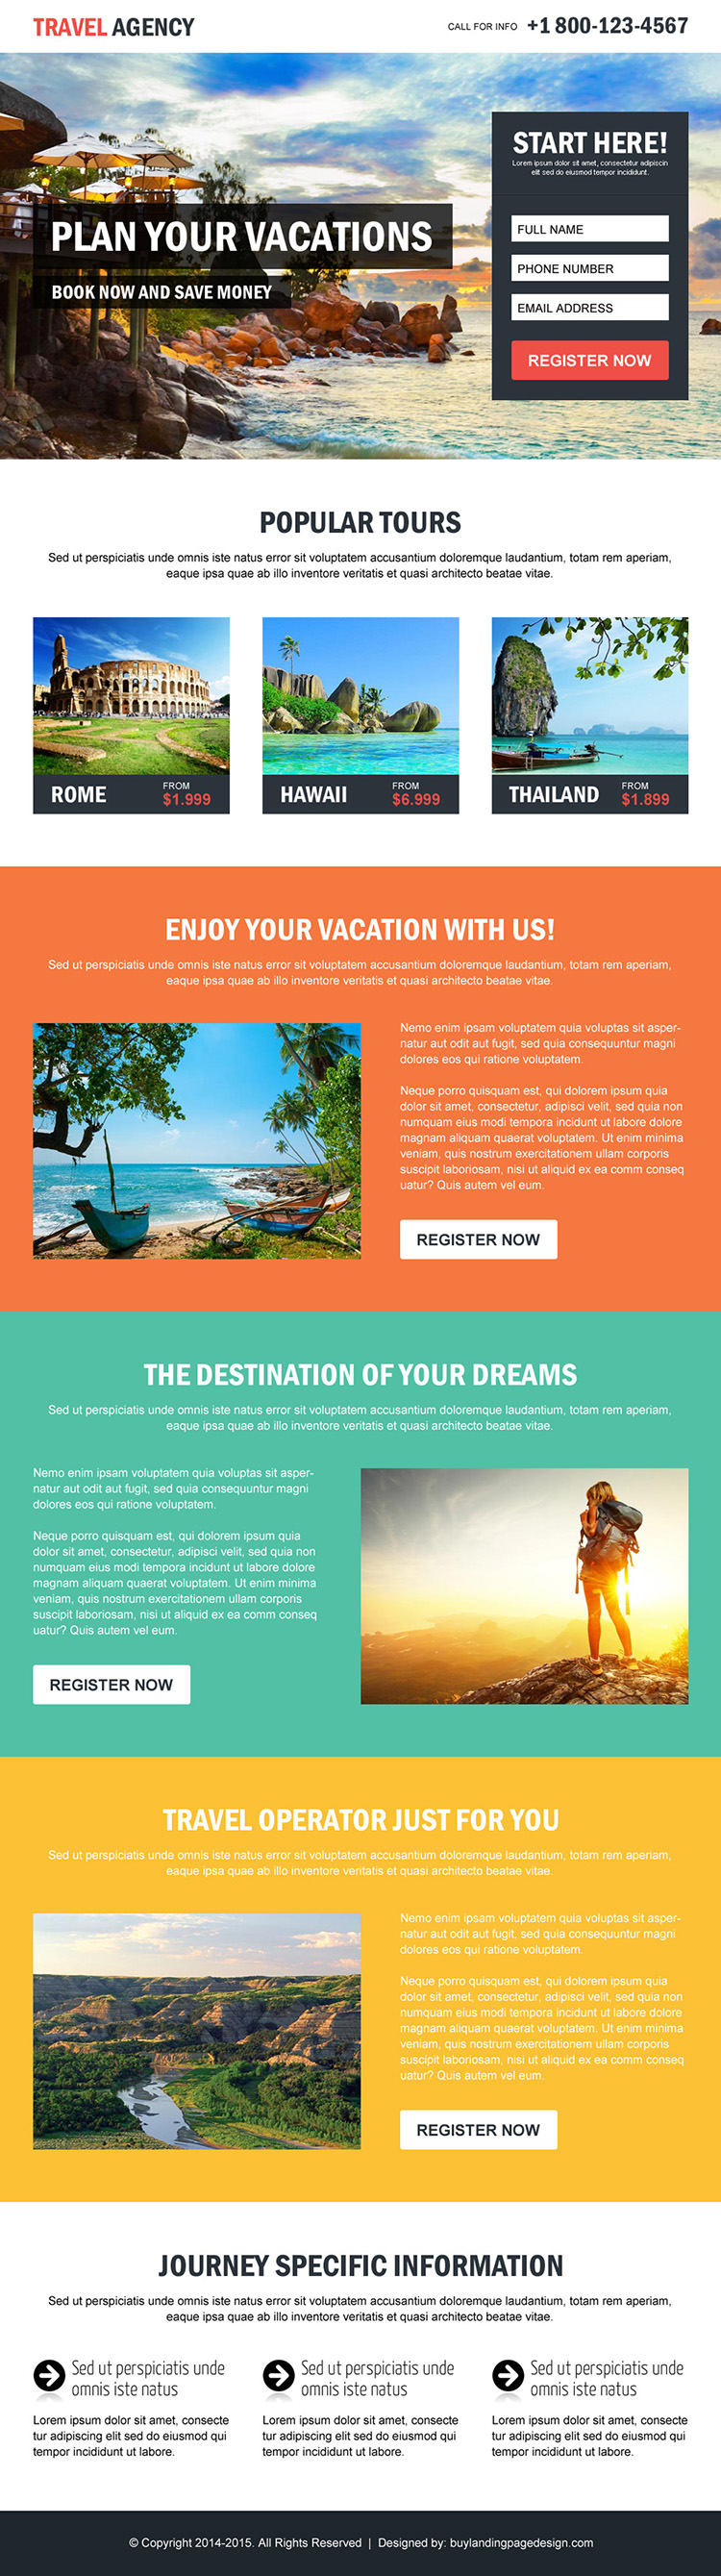 travel agency plan your vacations lead capture converting landing page design